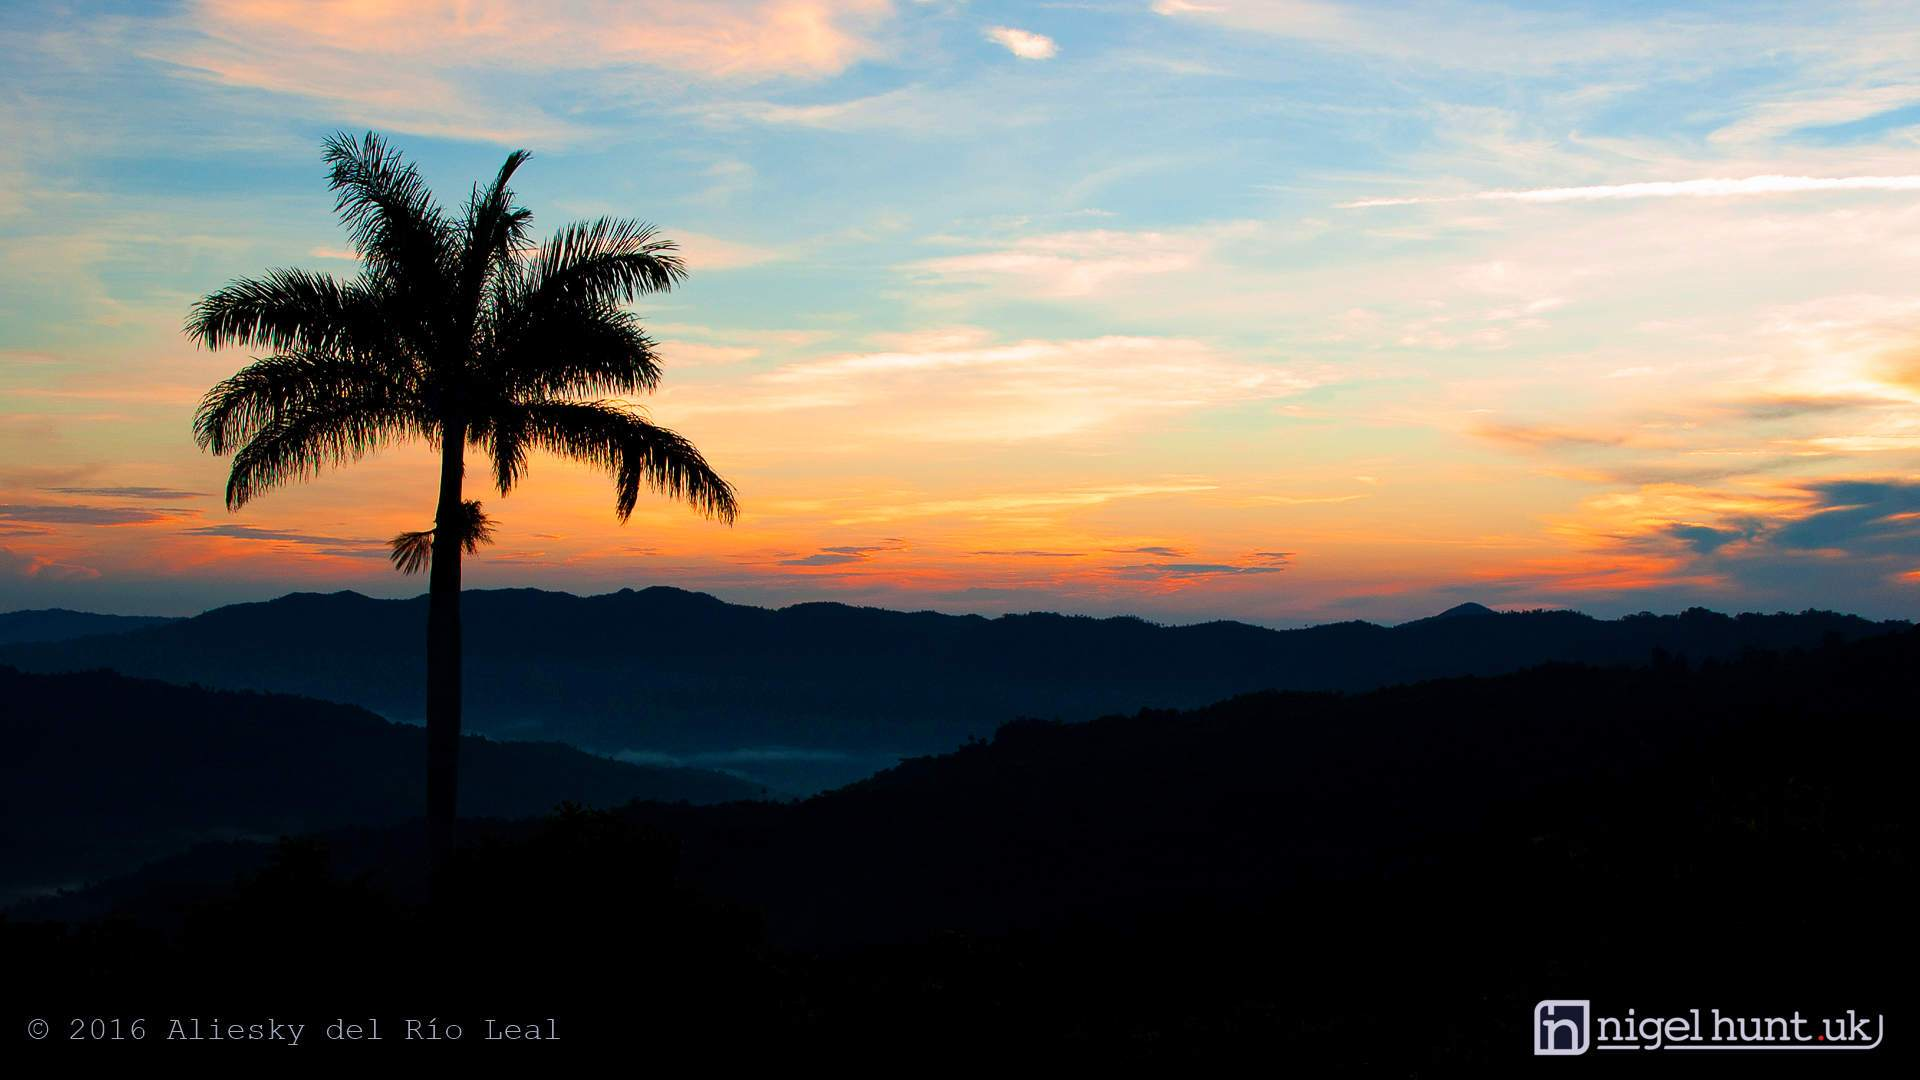 Sunrise in the Escambray mountains